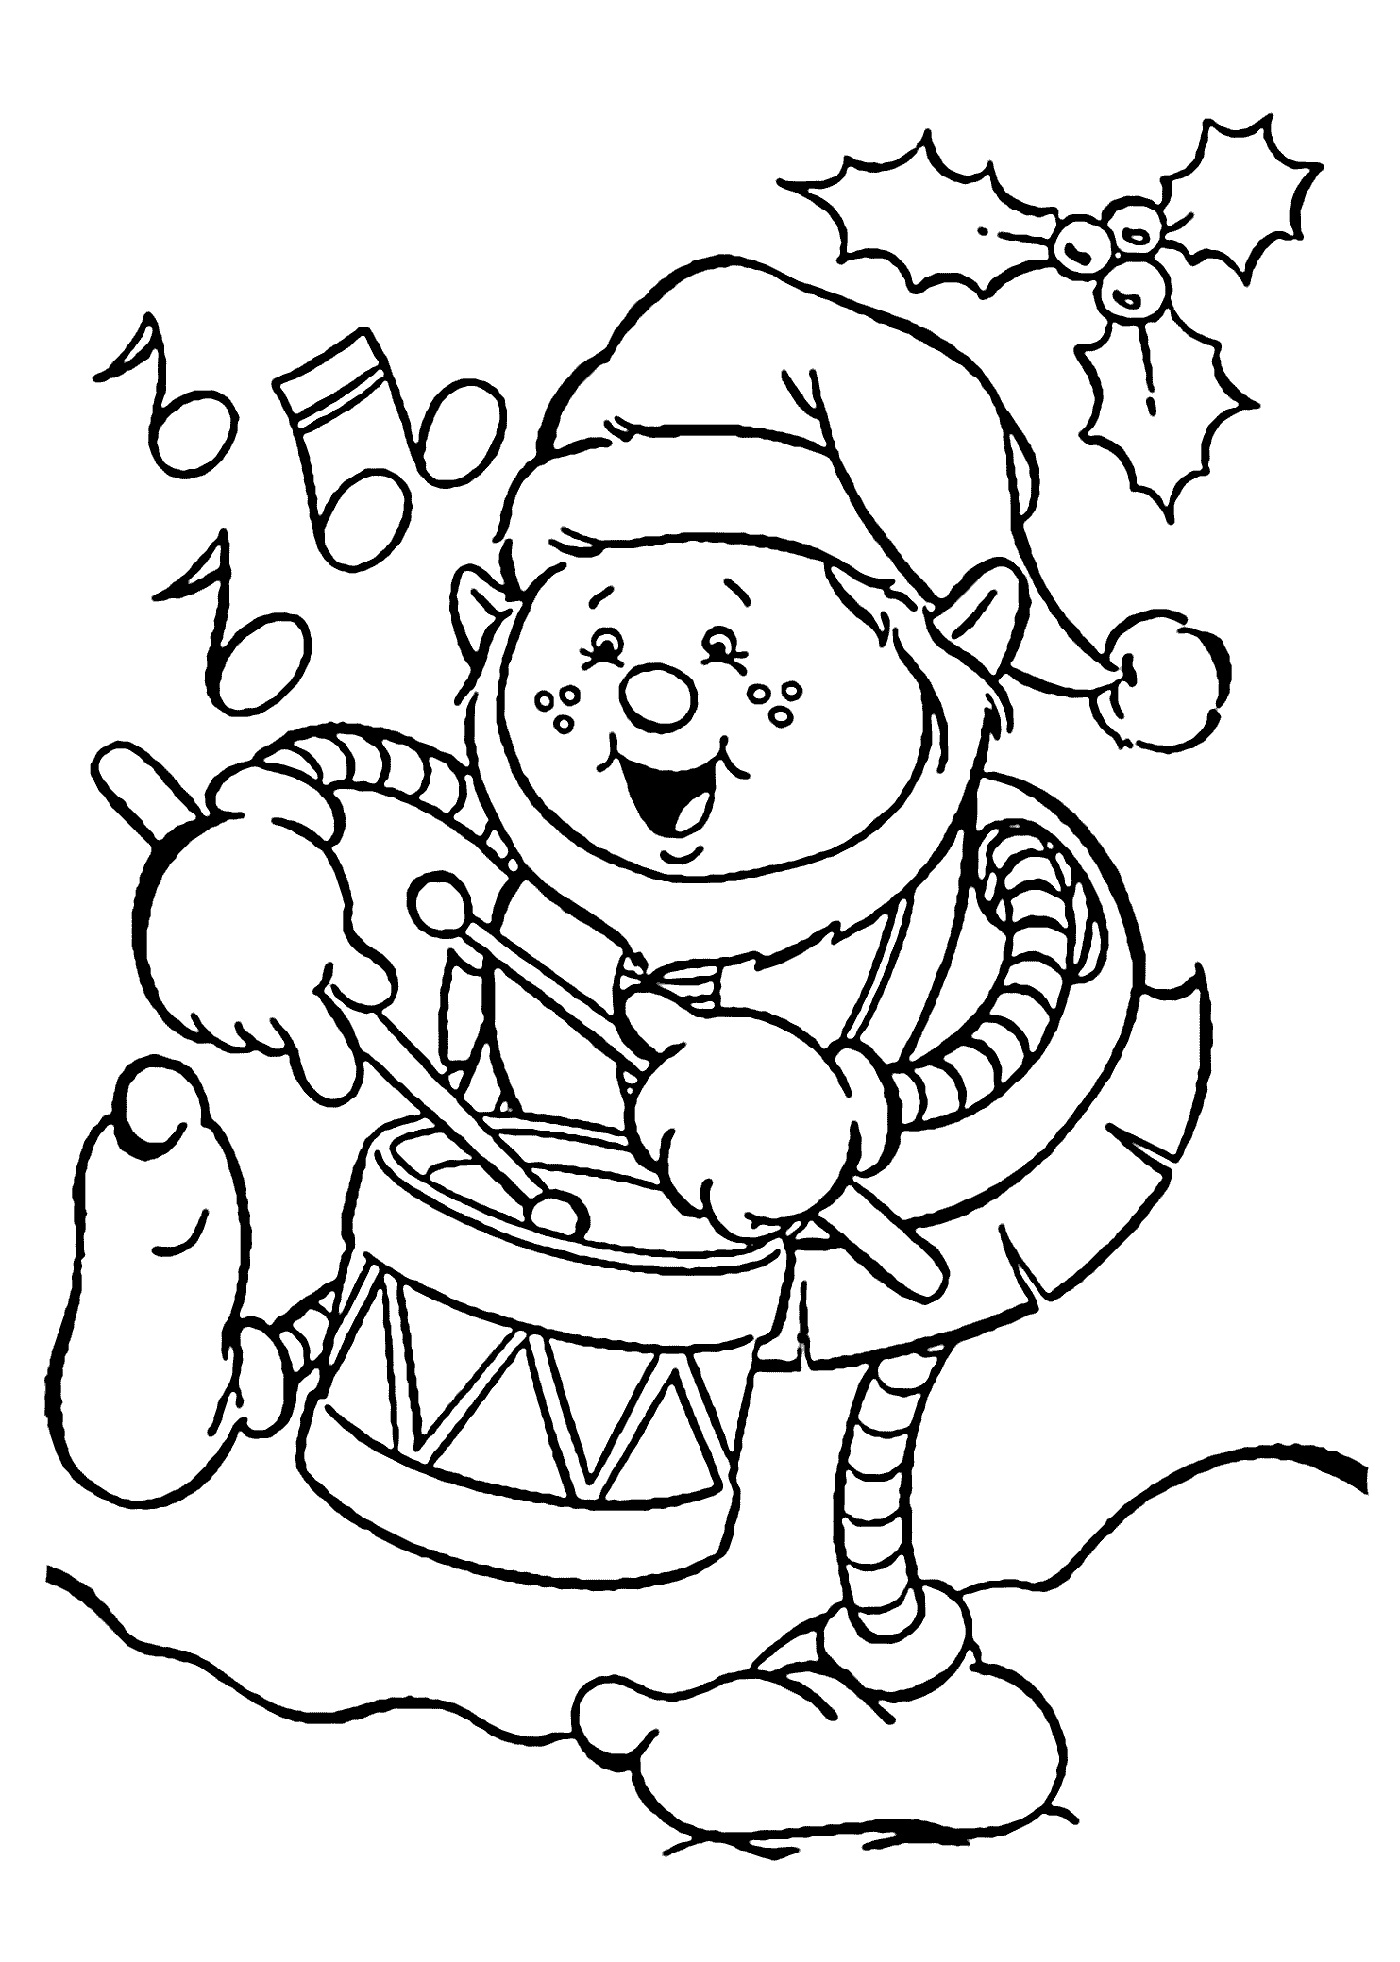 Christmas Coloring Pictures to Print | 101 Coloring